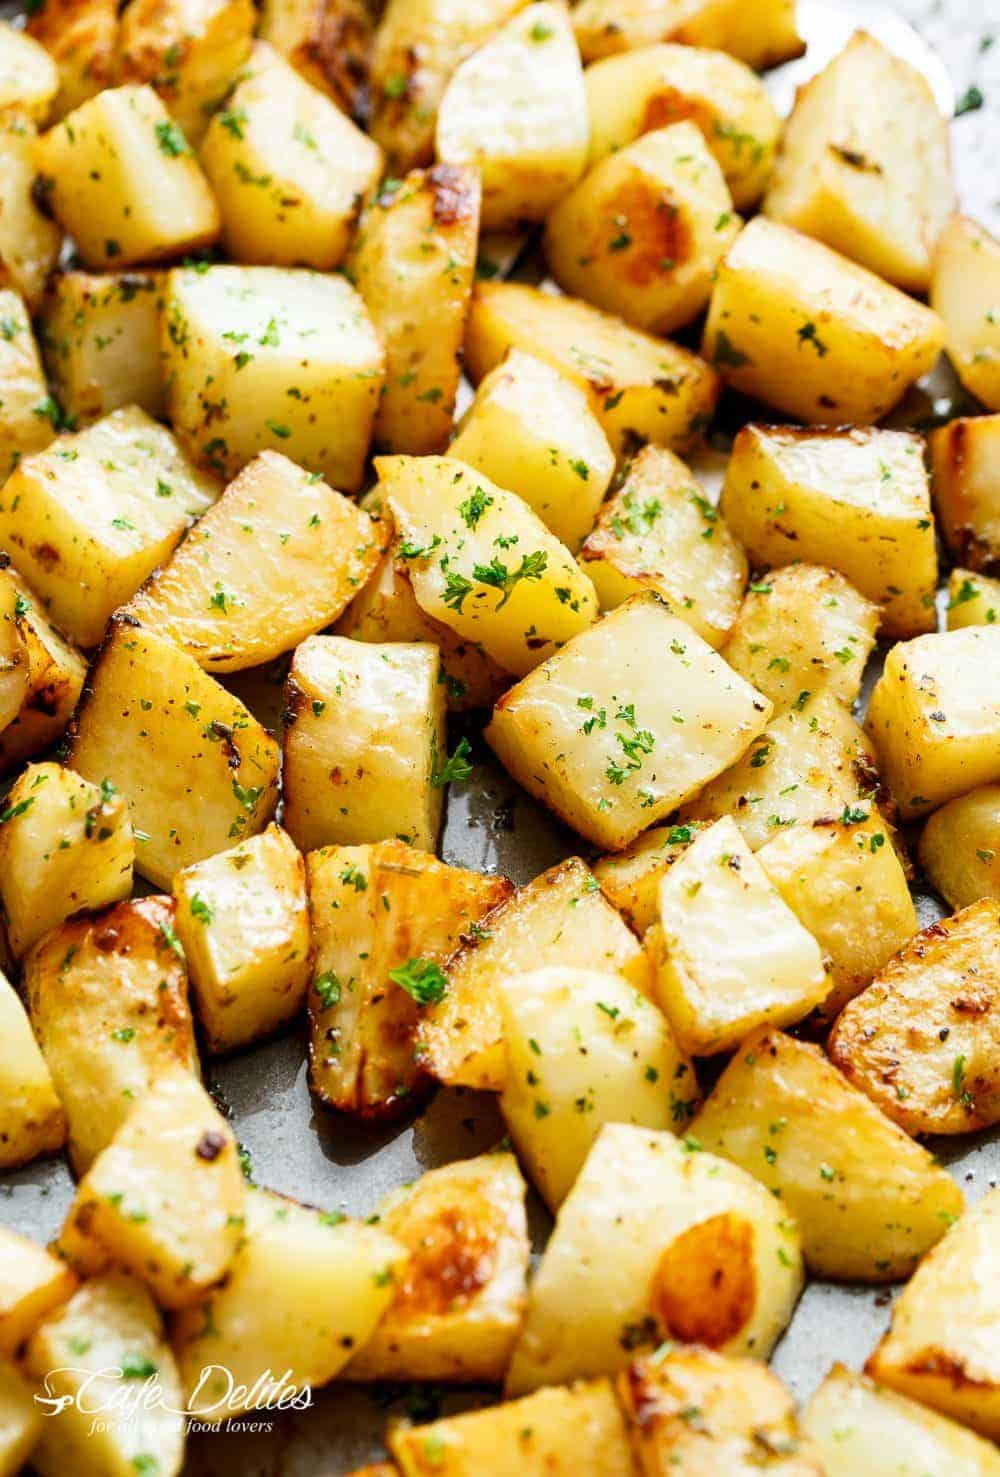 Crispy Garlic Roasted Potatoes are a super simple side dish perfect with anything! Buttery, garlicky, fluffy inside and and crispy edges. These potatoes tick all my boxes! No need for bowls or pans when you can prepare AND cook your potatoes on ONE PAN! | cafedelites.com